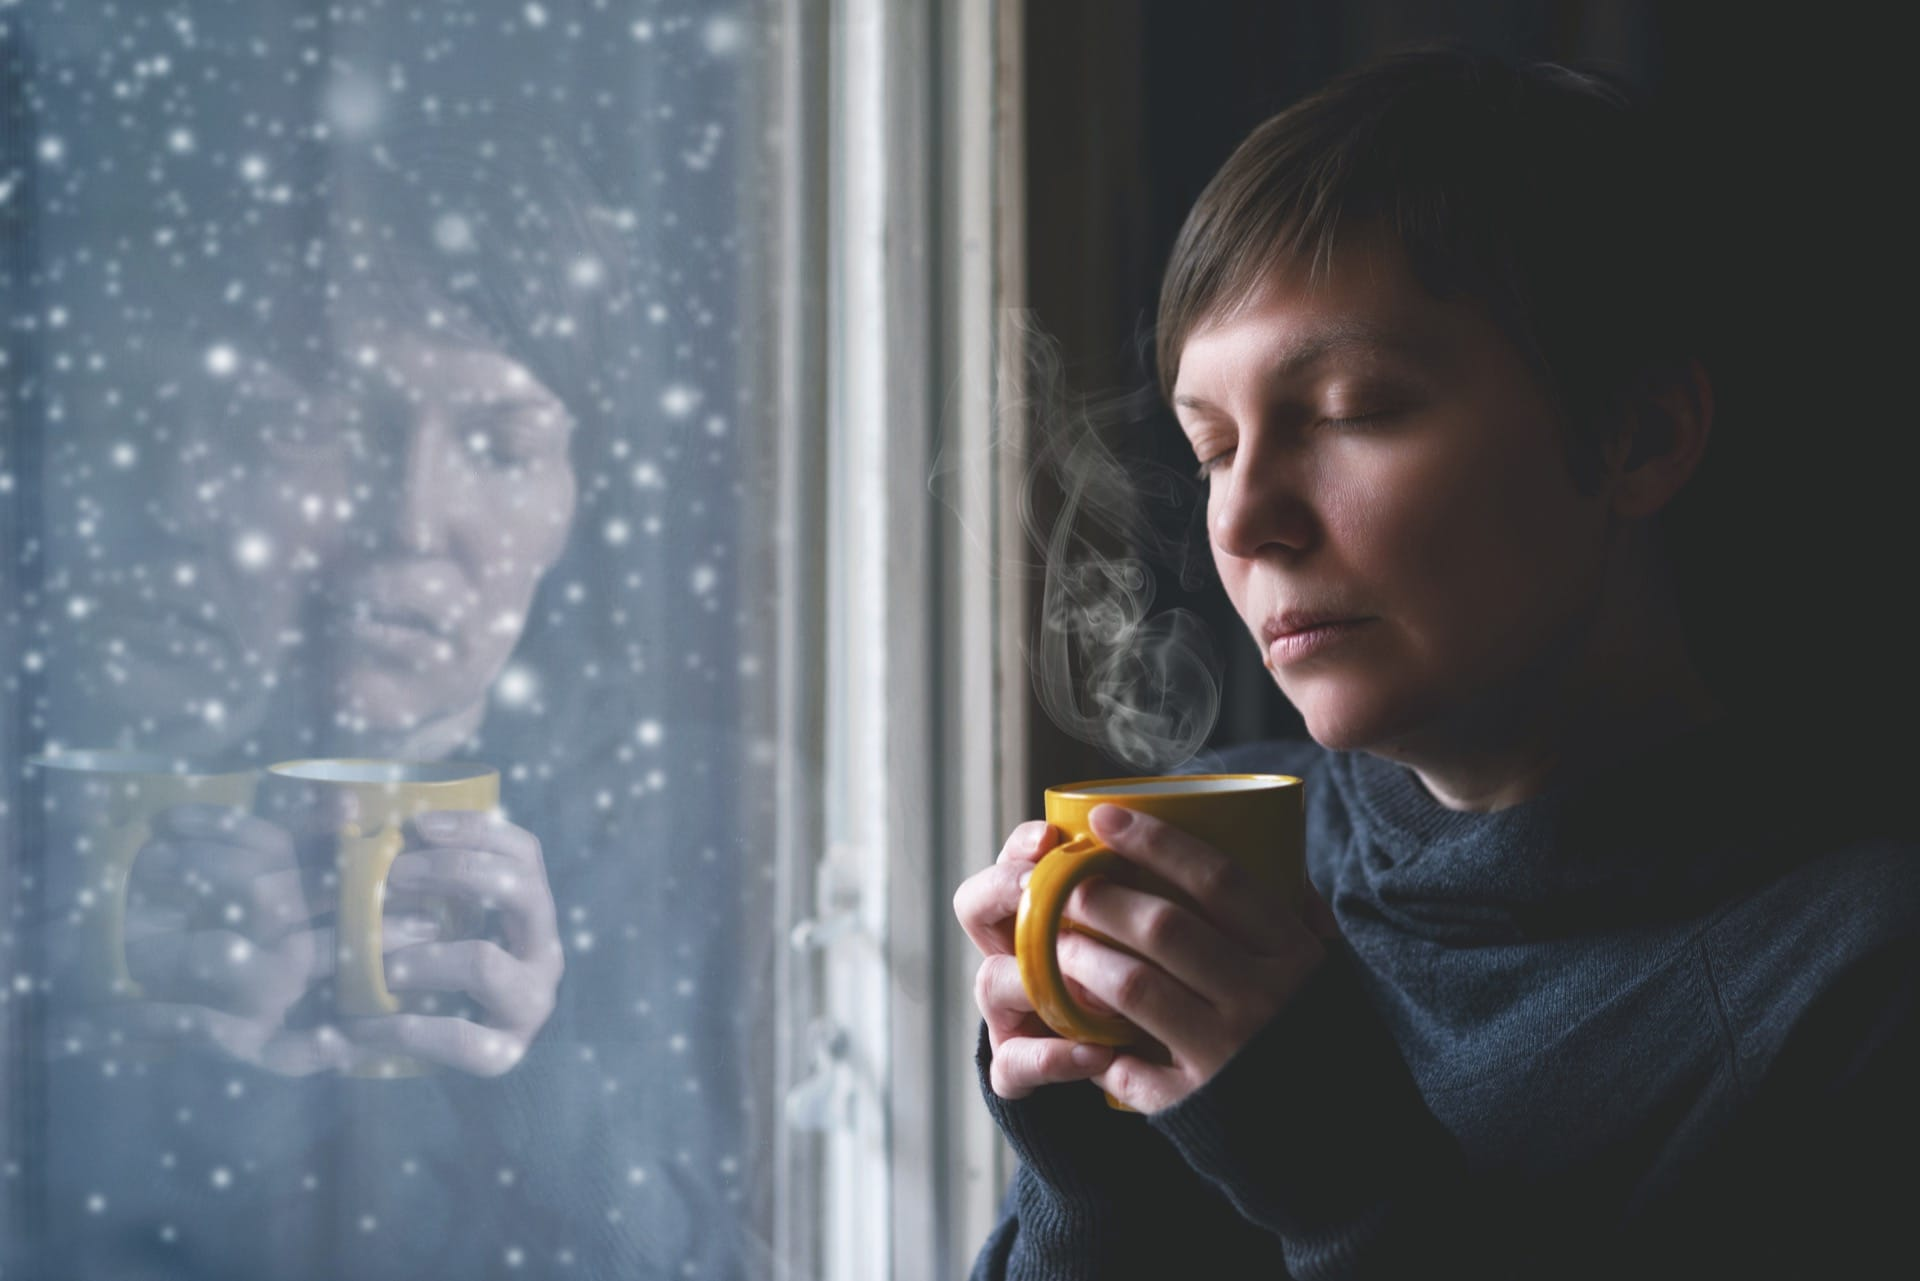 Don't let the cold weather get you down: Beating the winter blues